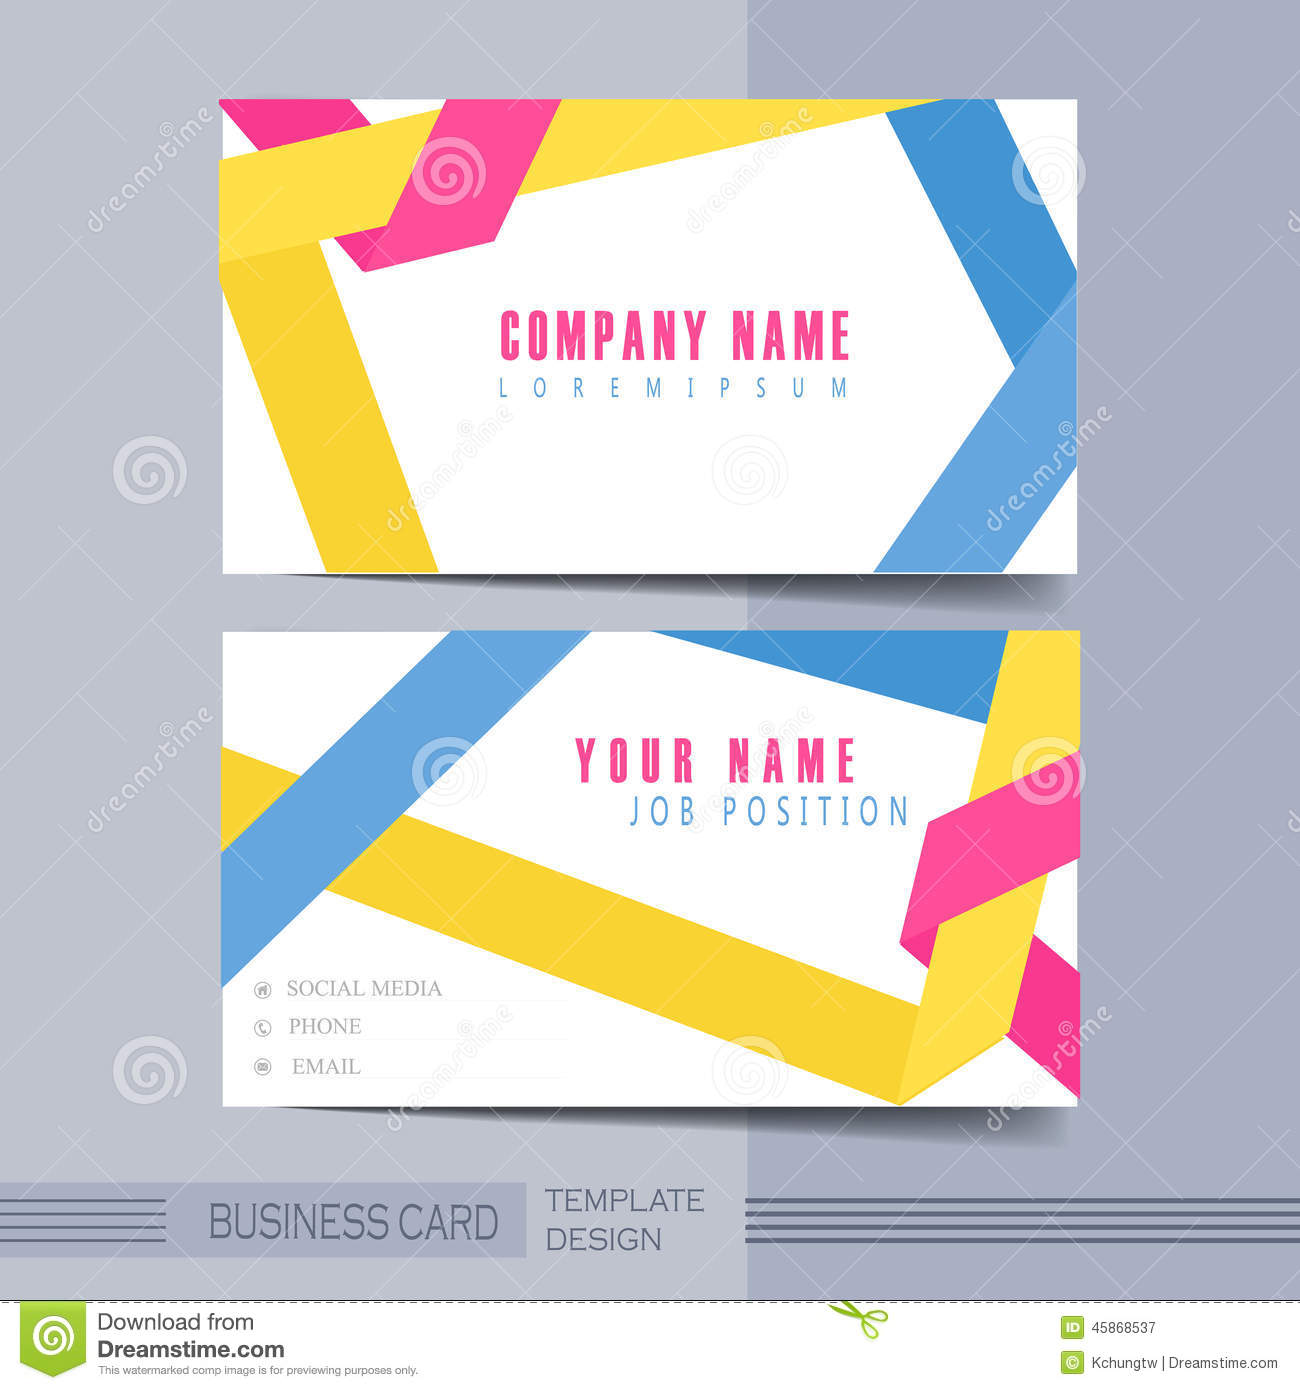 Origami folded lines background design for business card stock royalty free vector download origami folded lines background design for business card magicingreecefo Gallery